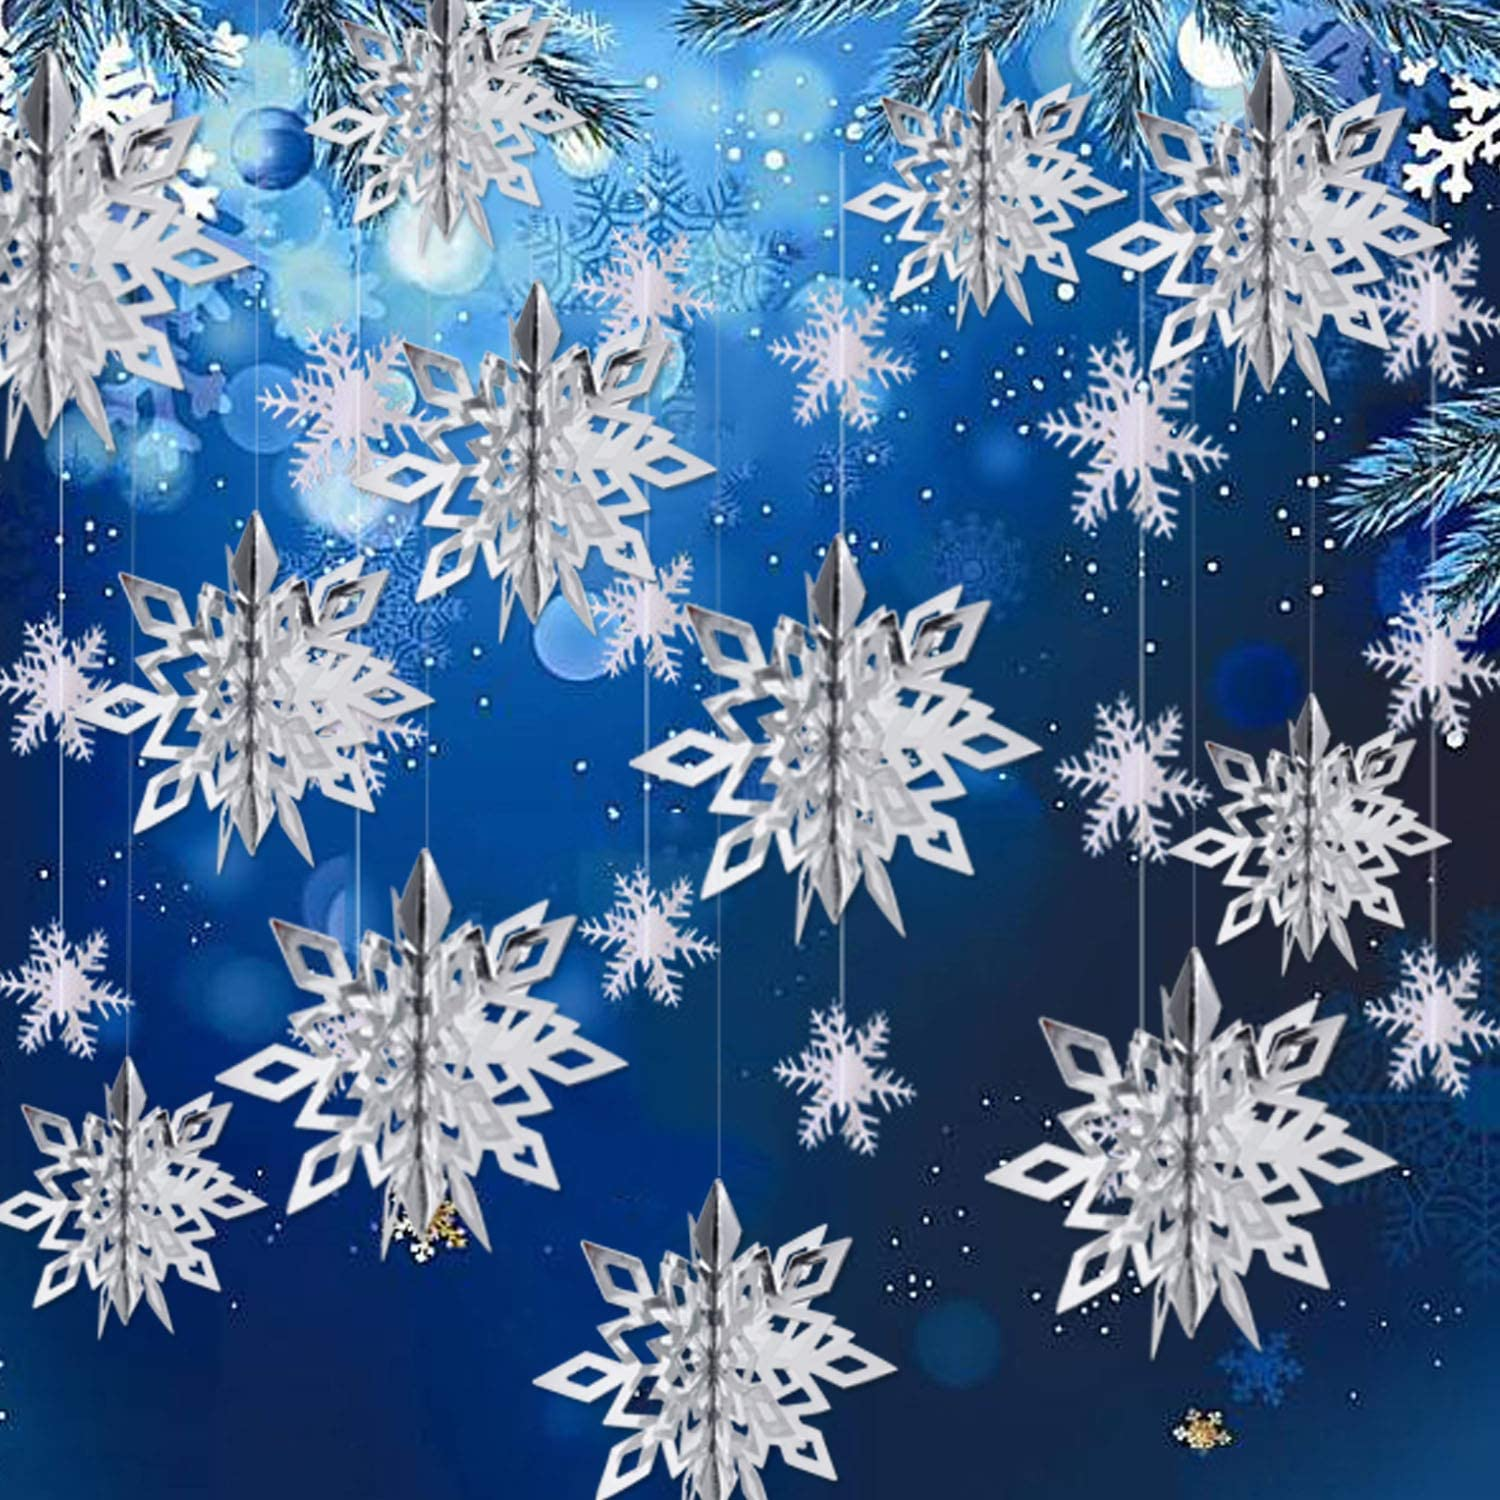 Winter Christmas Hanging Snowflake Decorations - 12PCS 3D Large Silver Snowflakes & 12PCS White Paper Snowflakes Hanging Garland for Christmas Winter Wonderland Holiday New Year Party Home Decoration